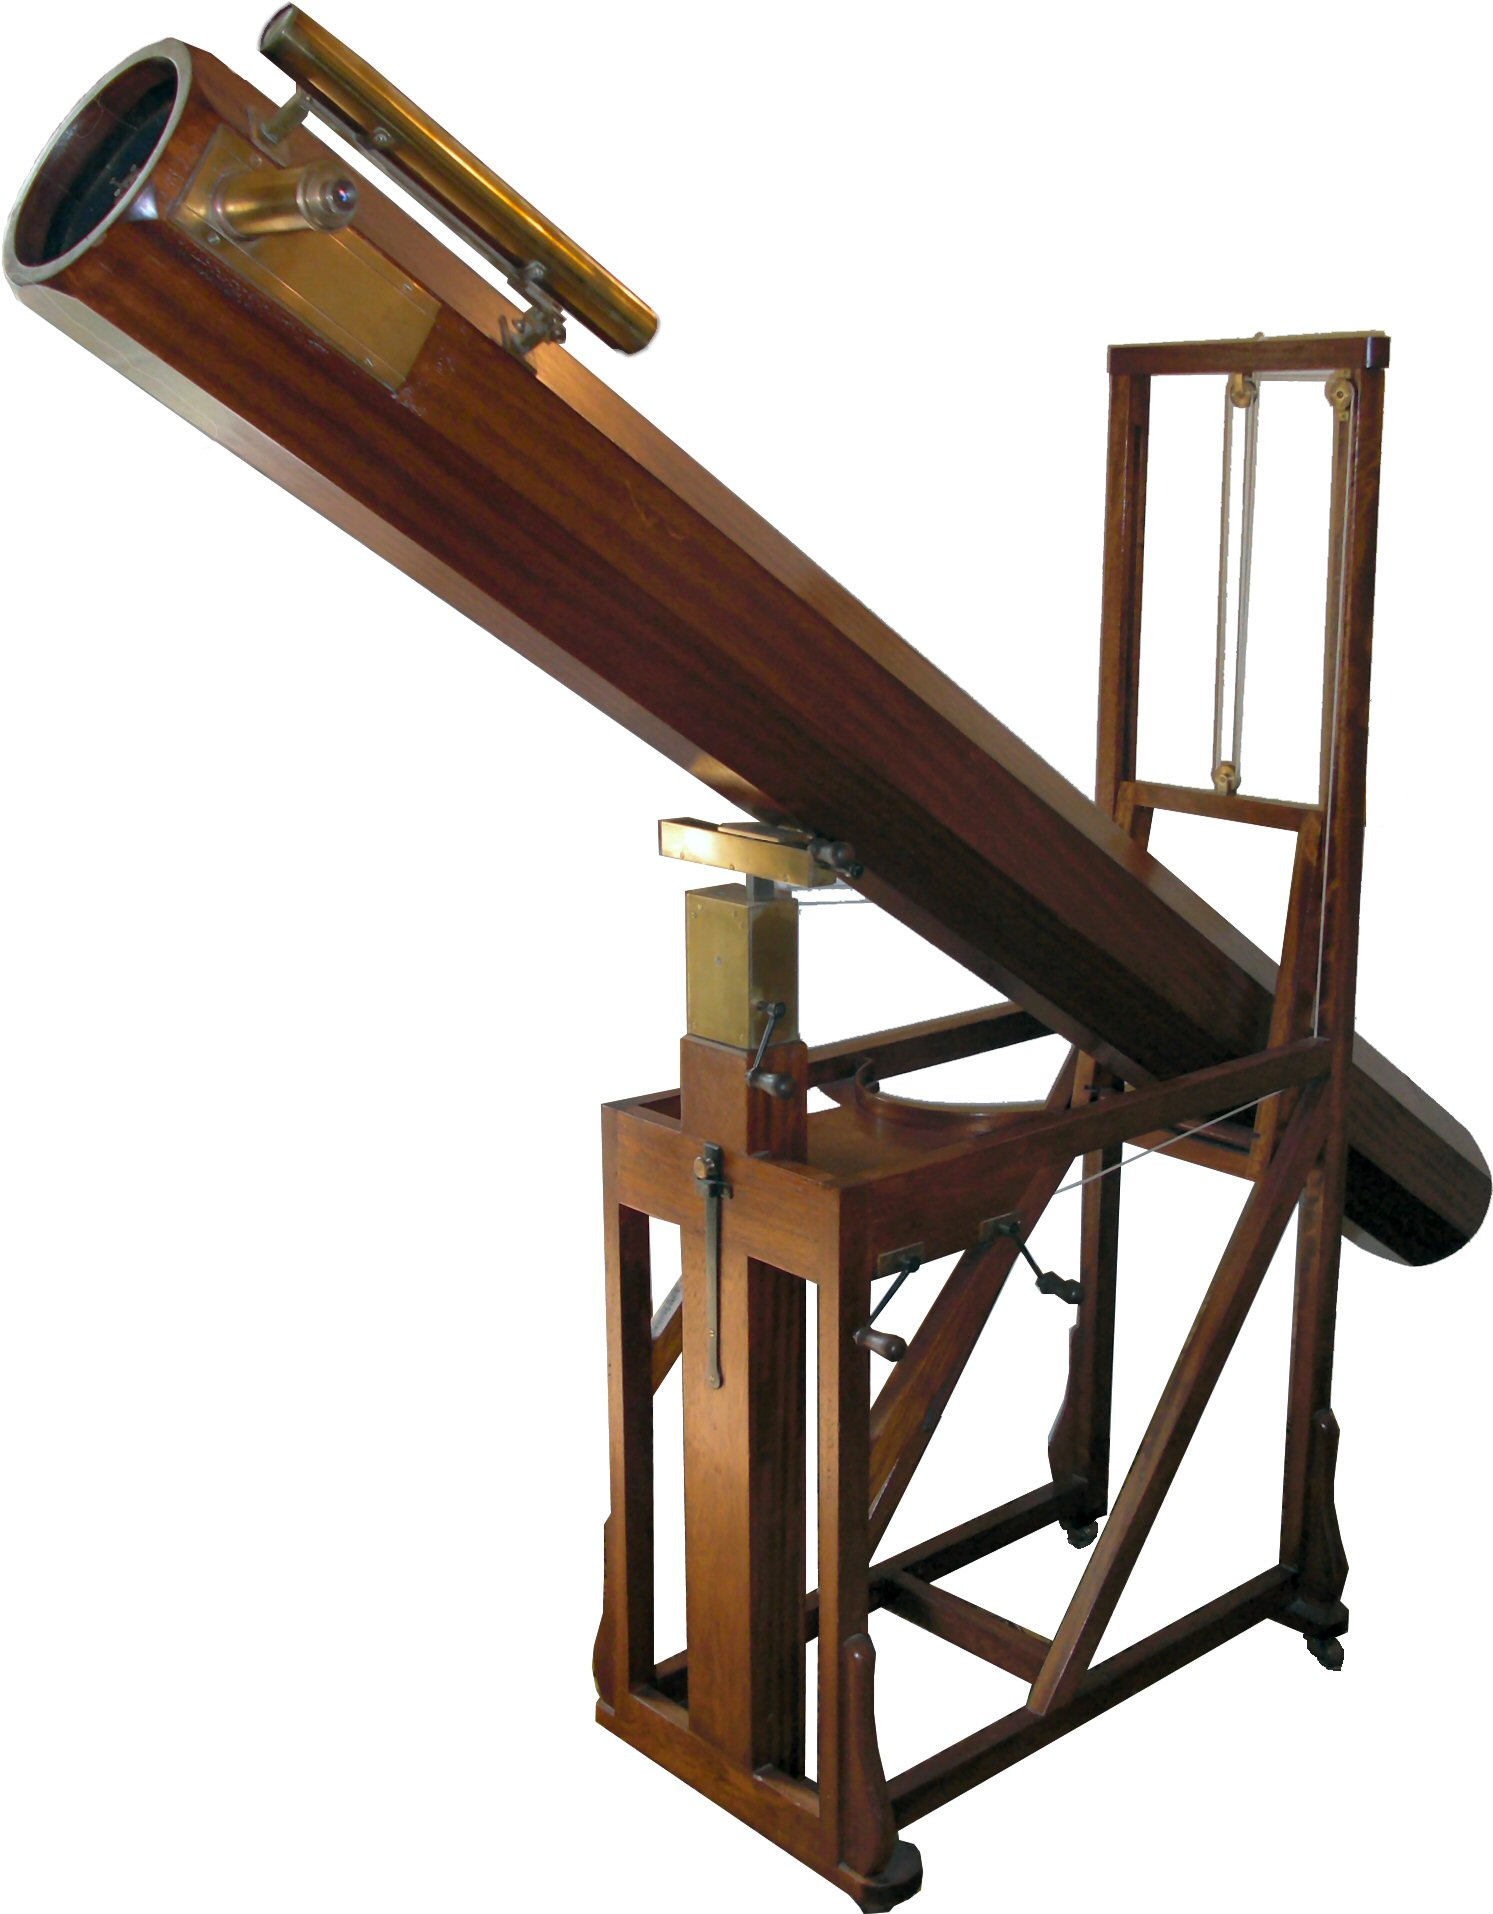 http://upload.wikimedia.org/wikipedia/commons/d/d7/HerschelTelescope.jpg